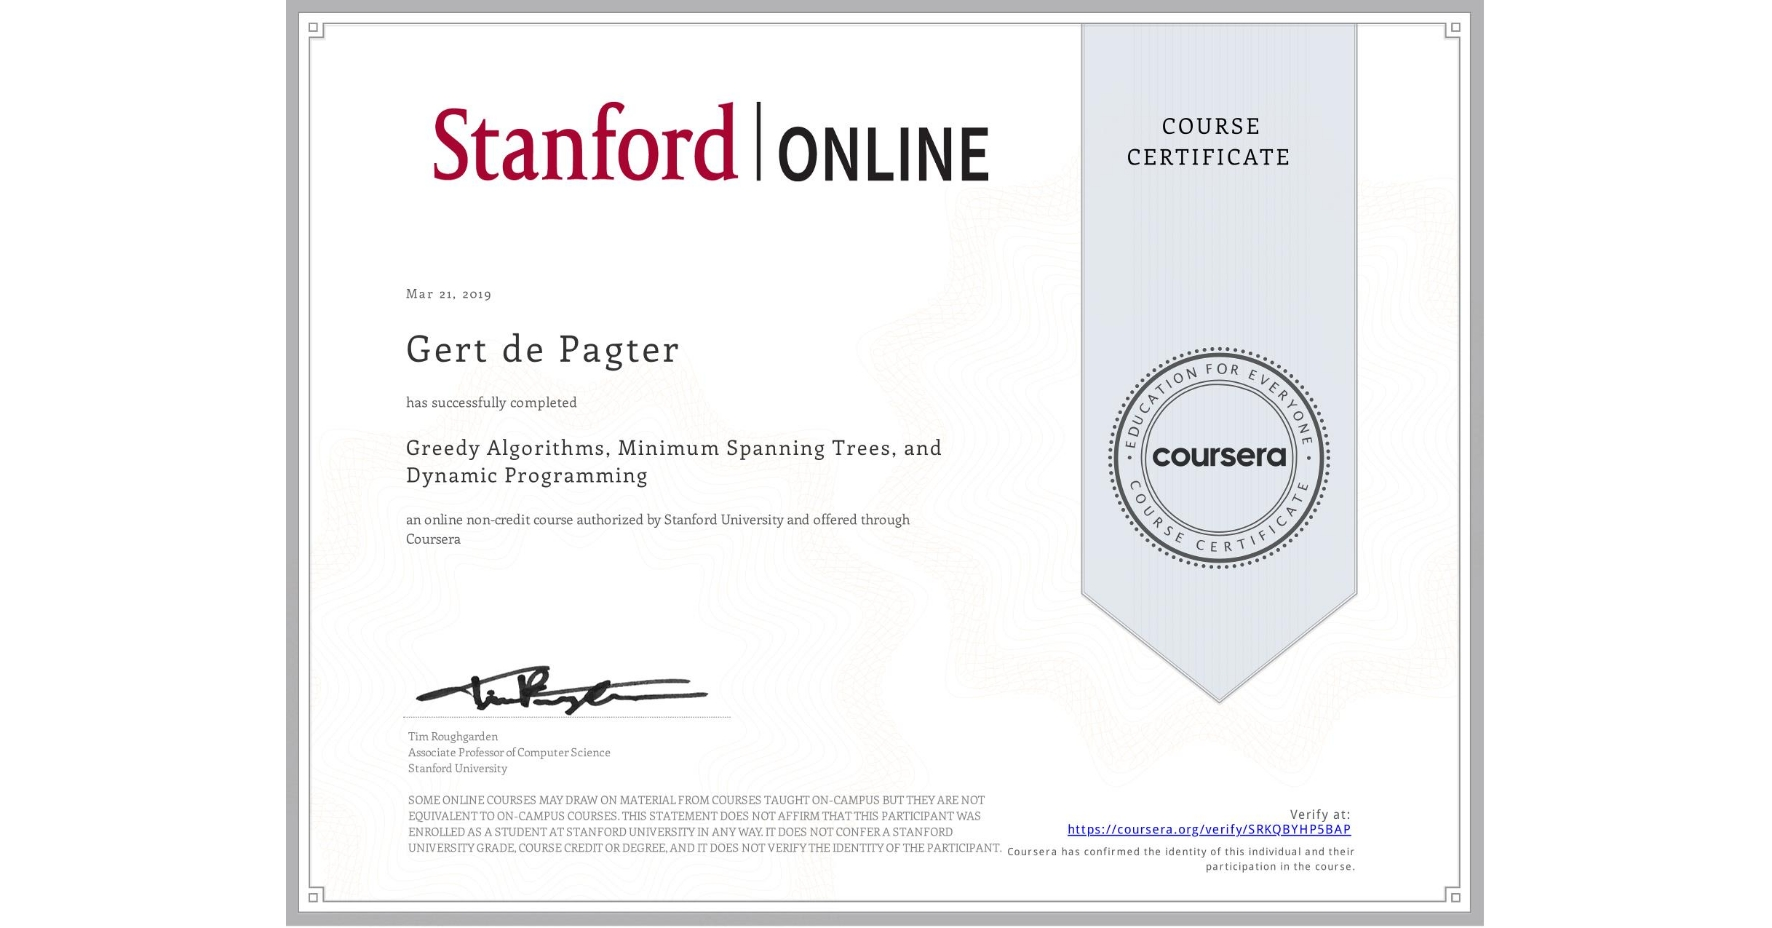 View certificate for Gert de Pagter, Greedy Algorithms, Minimum Spanning Trees, and Dynamic Programming, an online non-credit course authorized by Stanford University and offered through Coursera